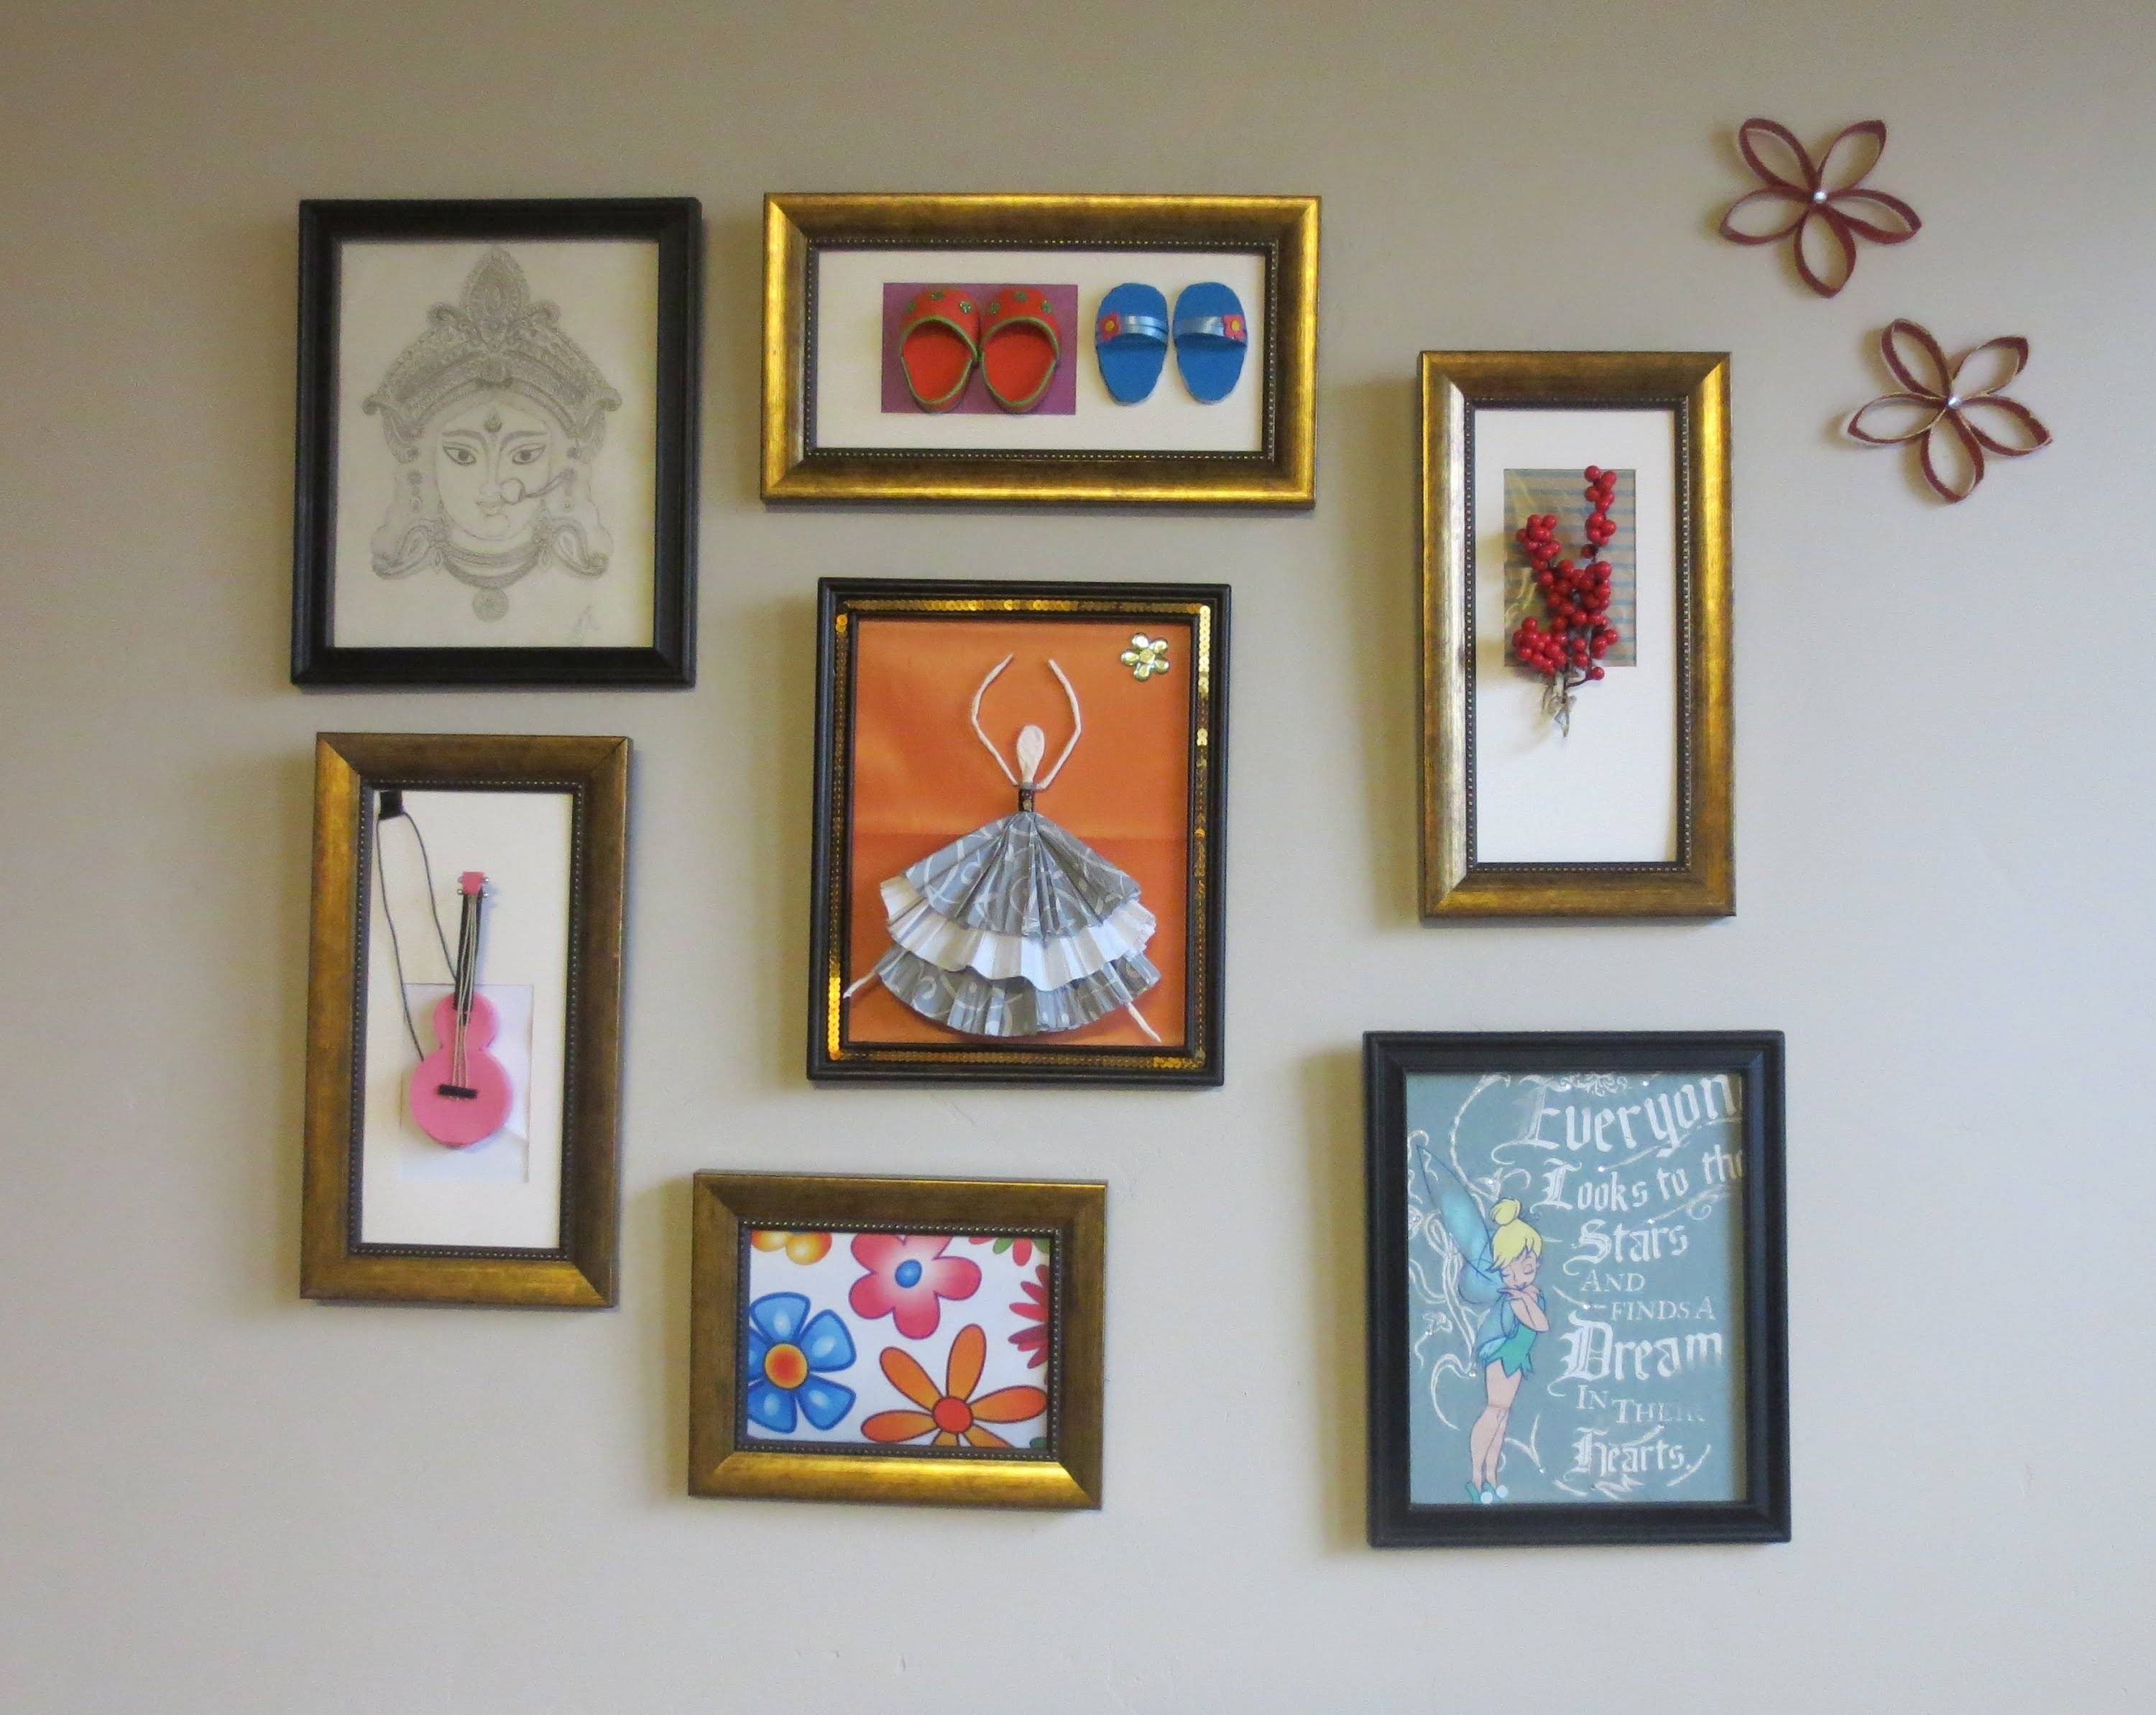 Decor : 40 Whimsical Framed Wall Art 36 X 36 Framed Wall Art Intended For 2017 Do It Yourself 3d Wall Art (View 9 of 20)